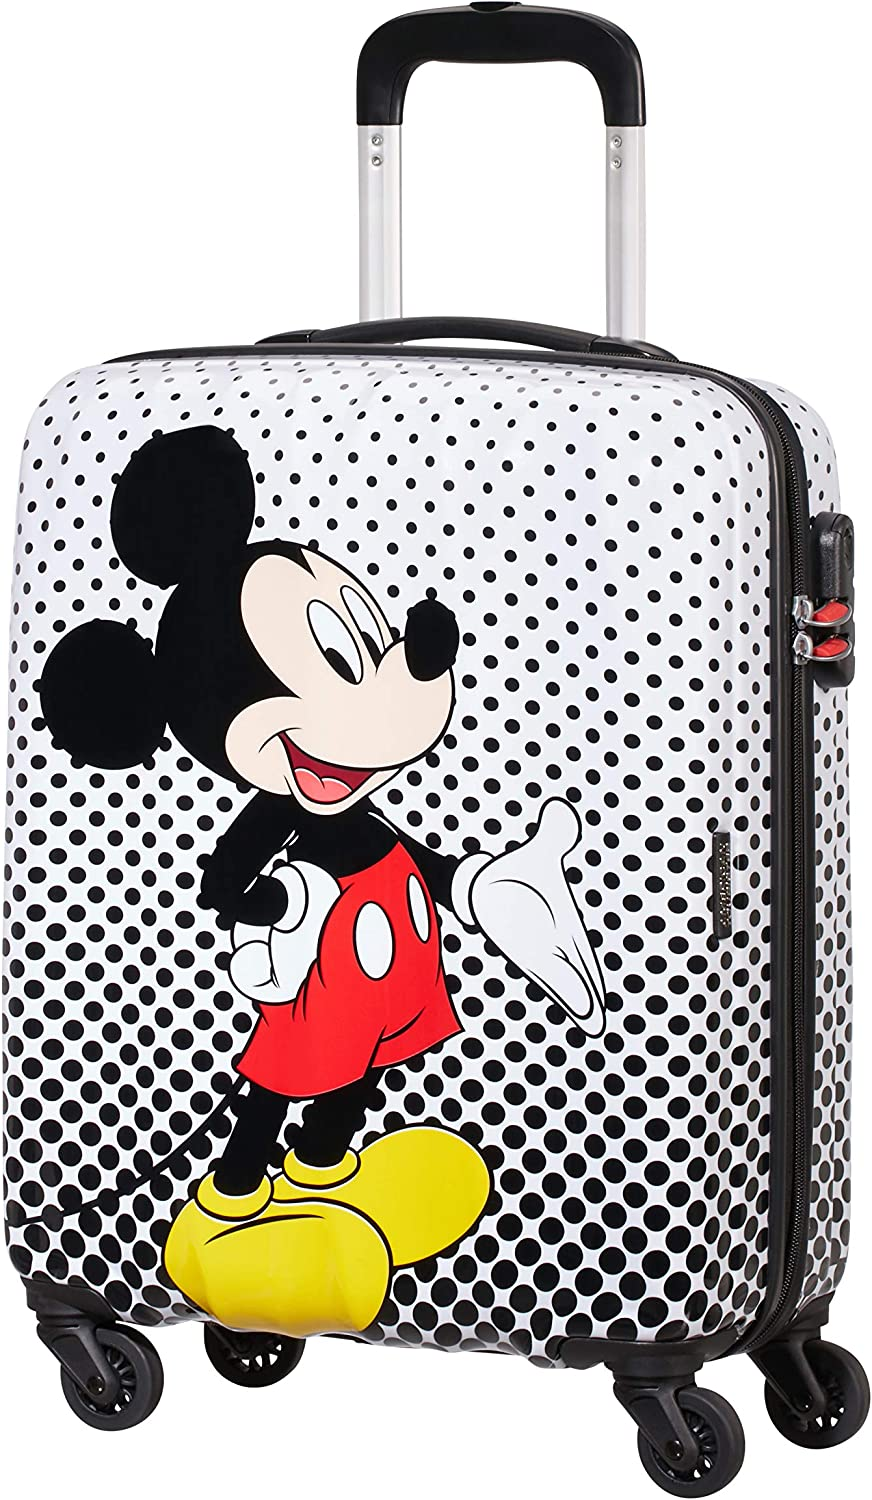 American Tourister Disney Legends Spinner S Equipaje de Mano Infantil, 55 cm, 36 L, Multicolor (Mickey Mouse Polka Dot)